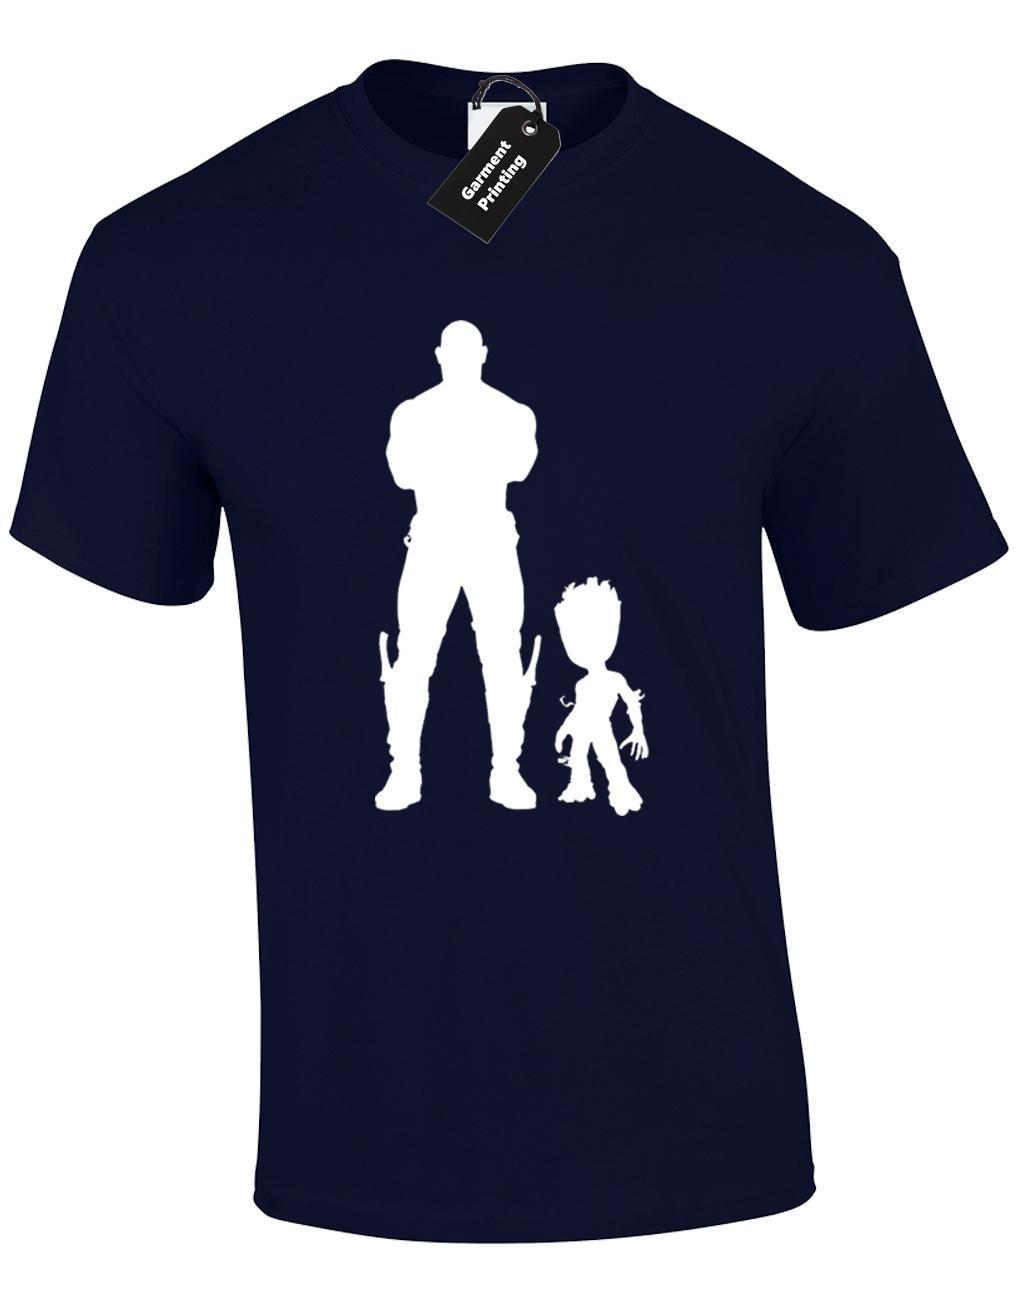 DRAX AND GROOT KIDS BAMBINI T SHIRT GUARDIANS DESIGN GALAXY STAR LORD TOP